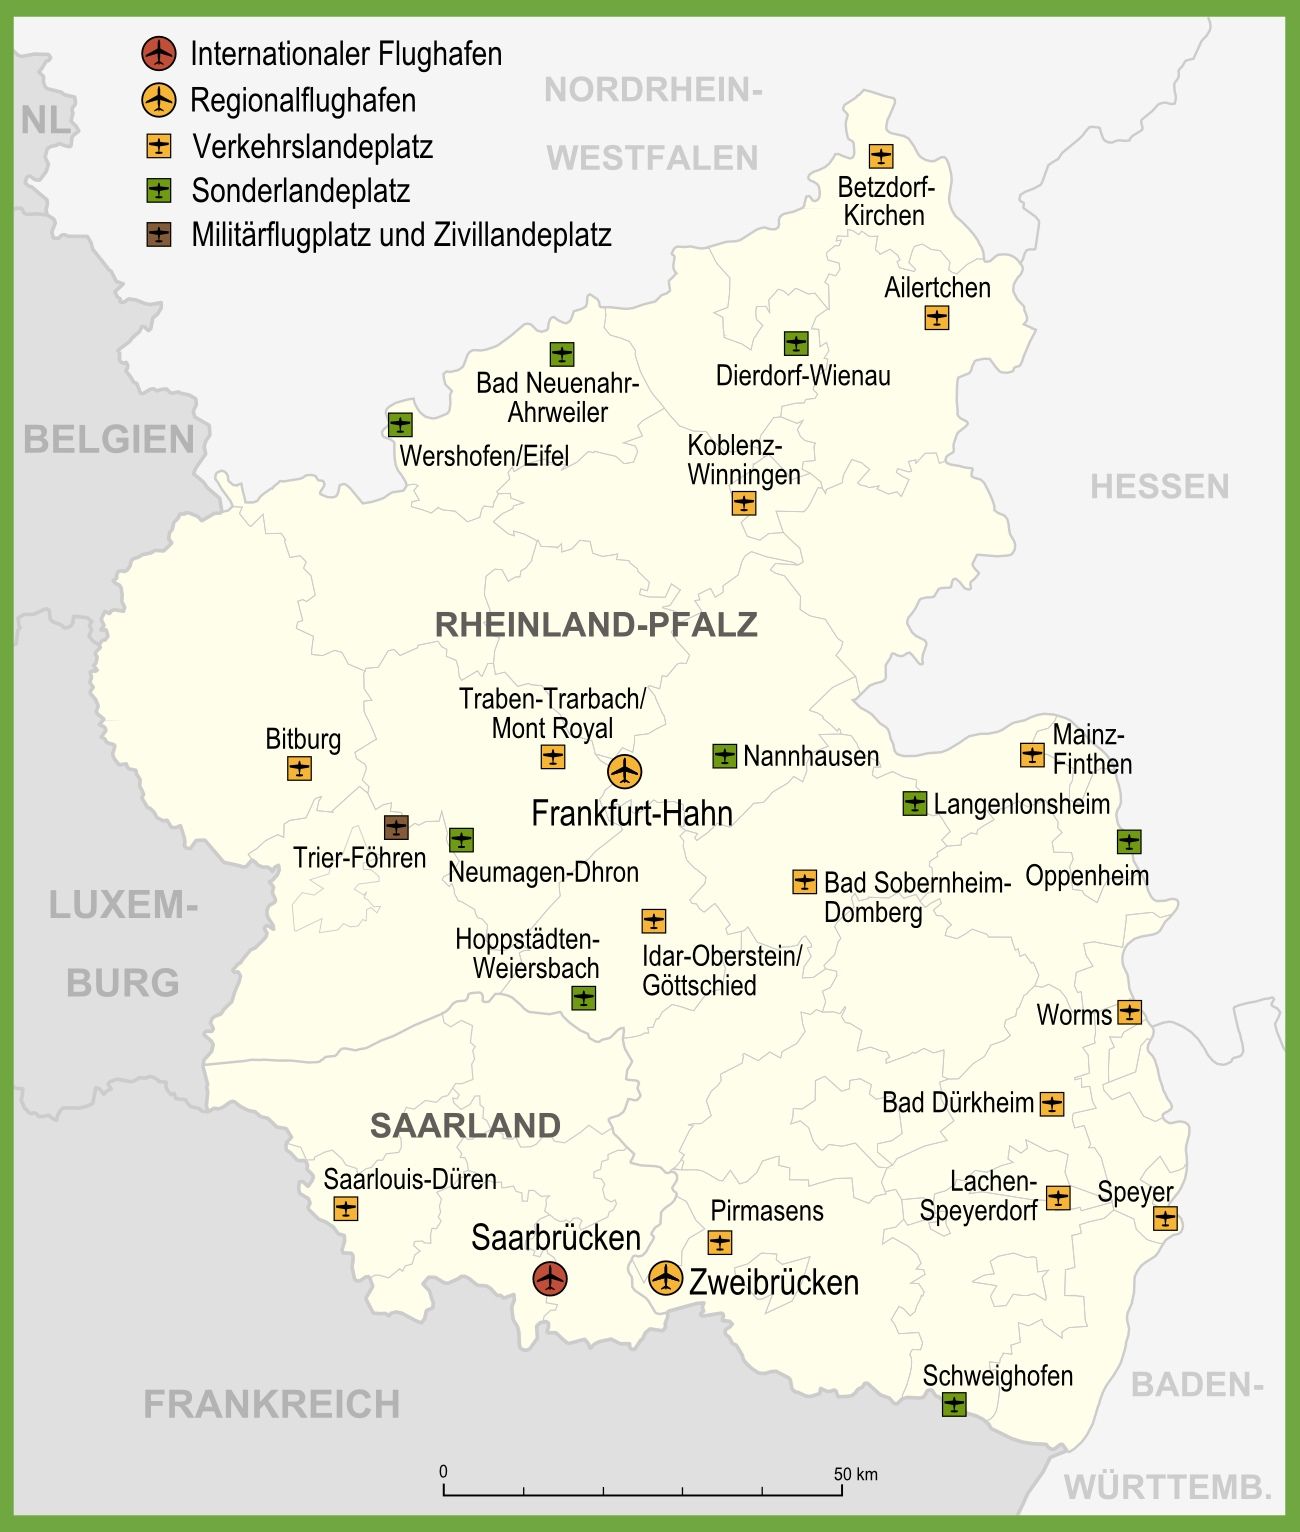 Map of airports in RhinelandPalatinate